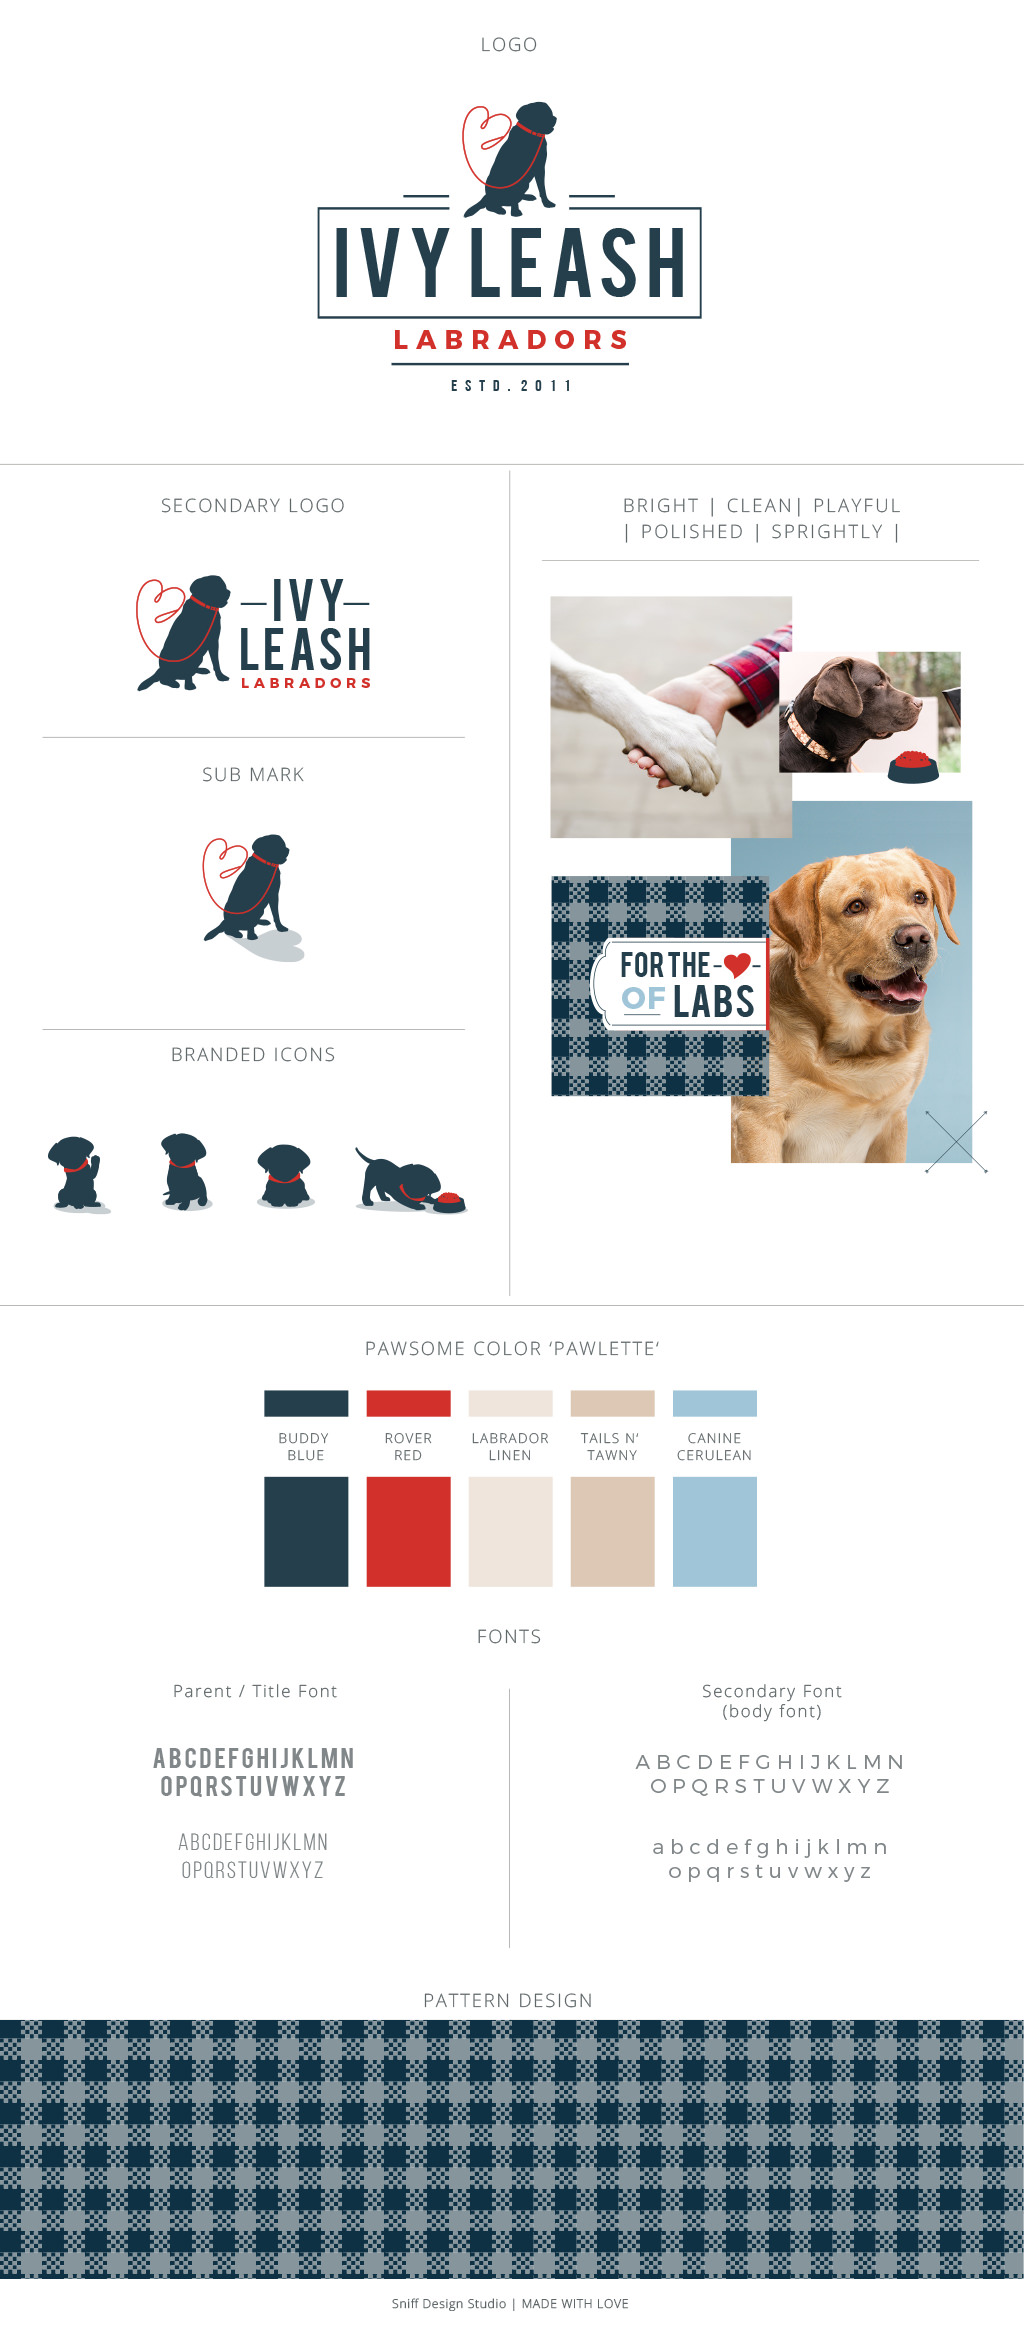 Ivy Leash Labradors Branding Design by Sniff Design Studio